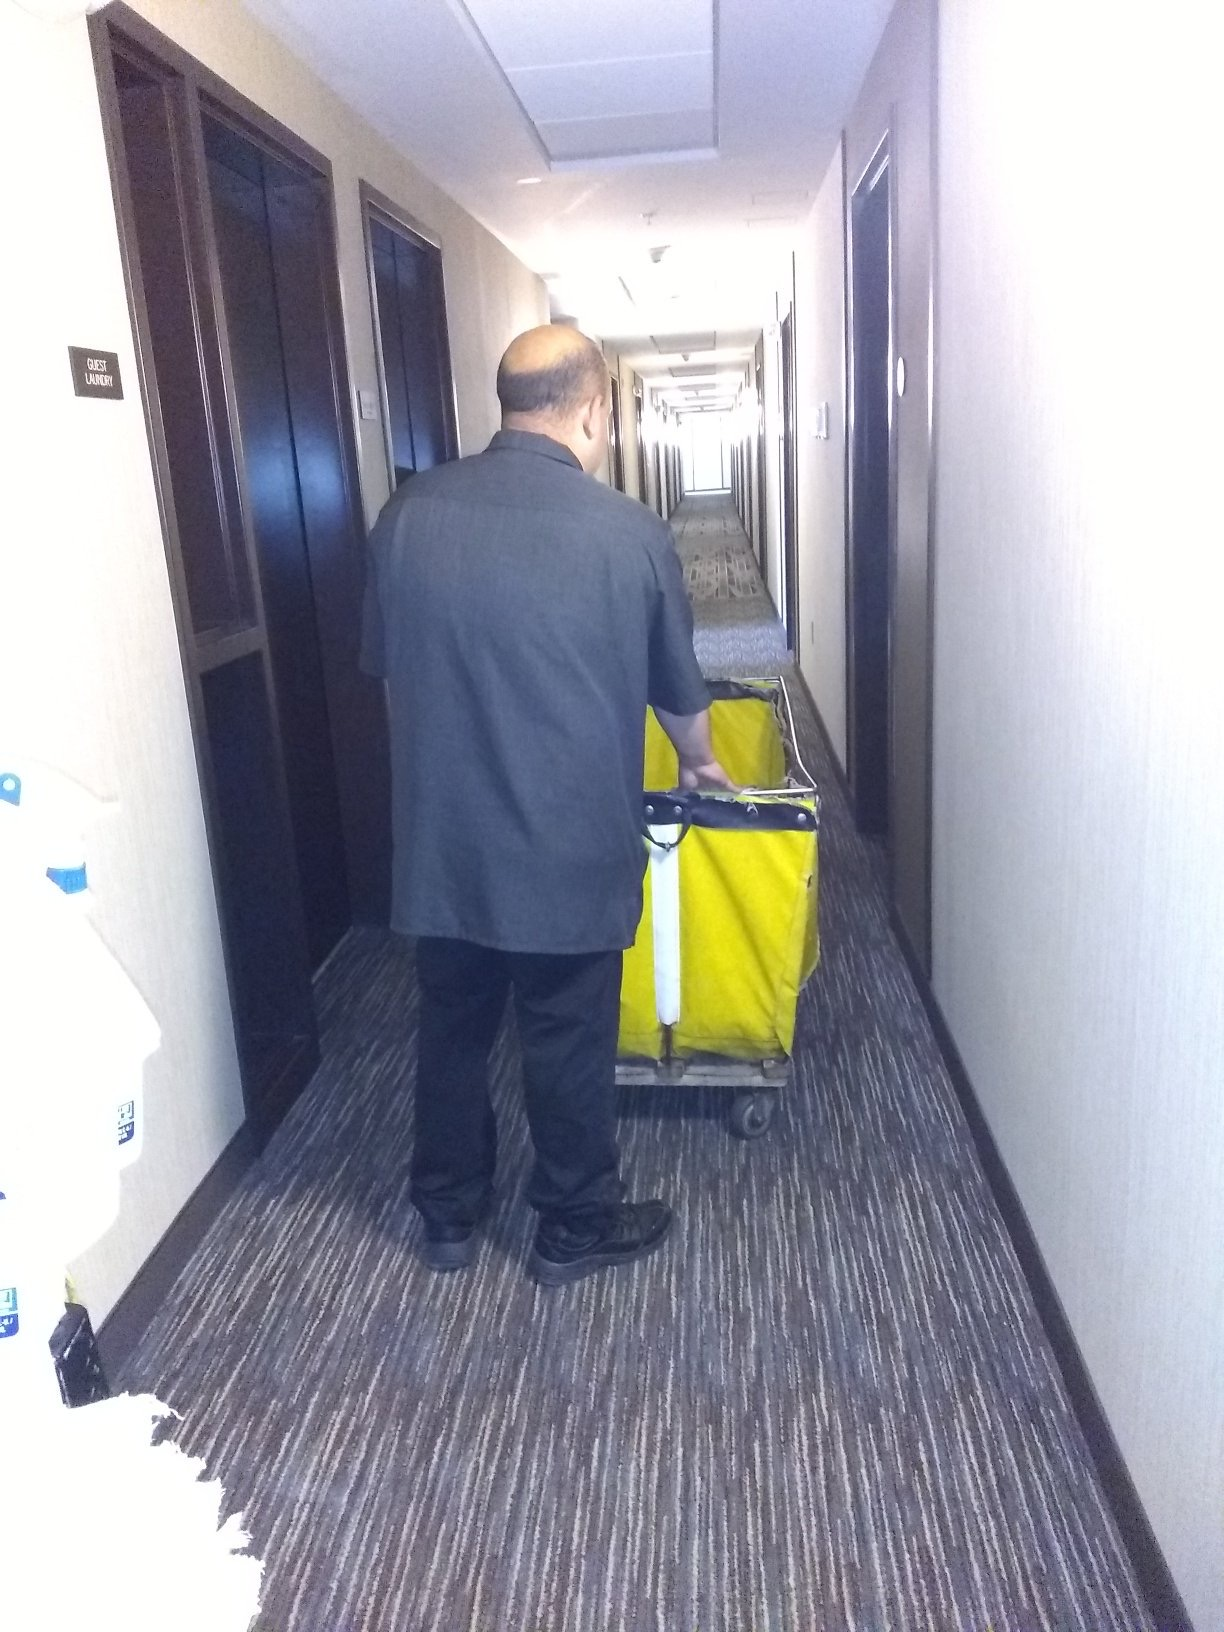 View of a man's back as he pushes janitor cart